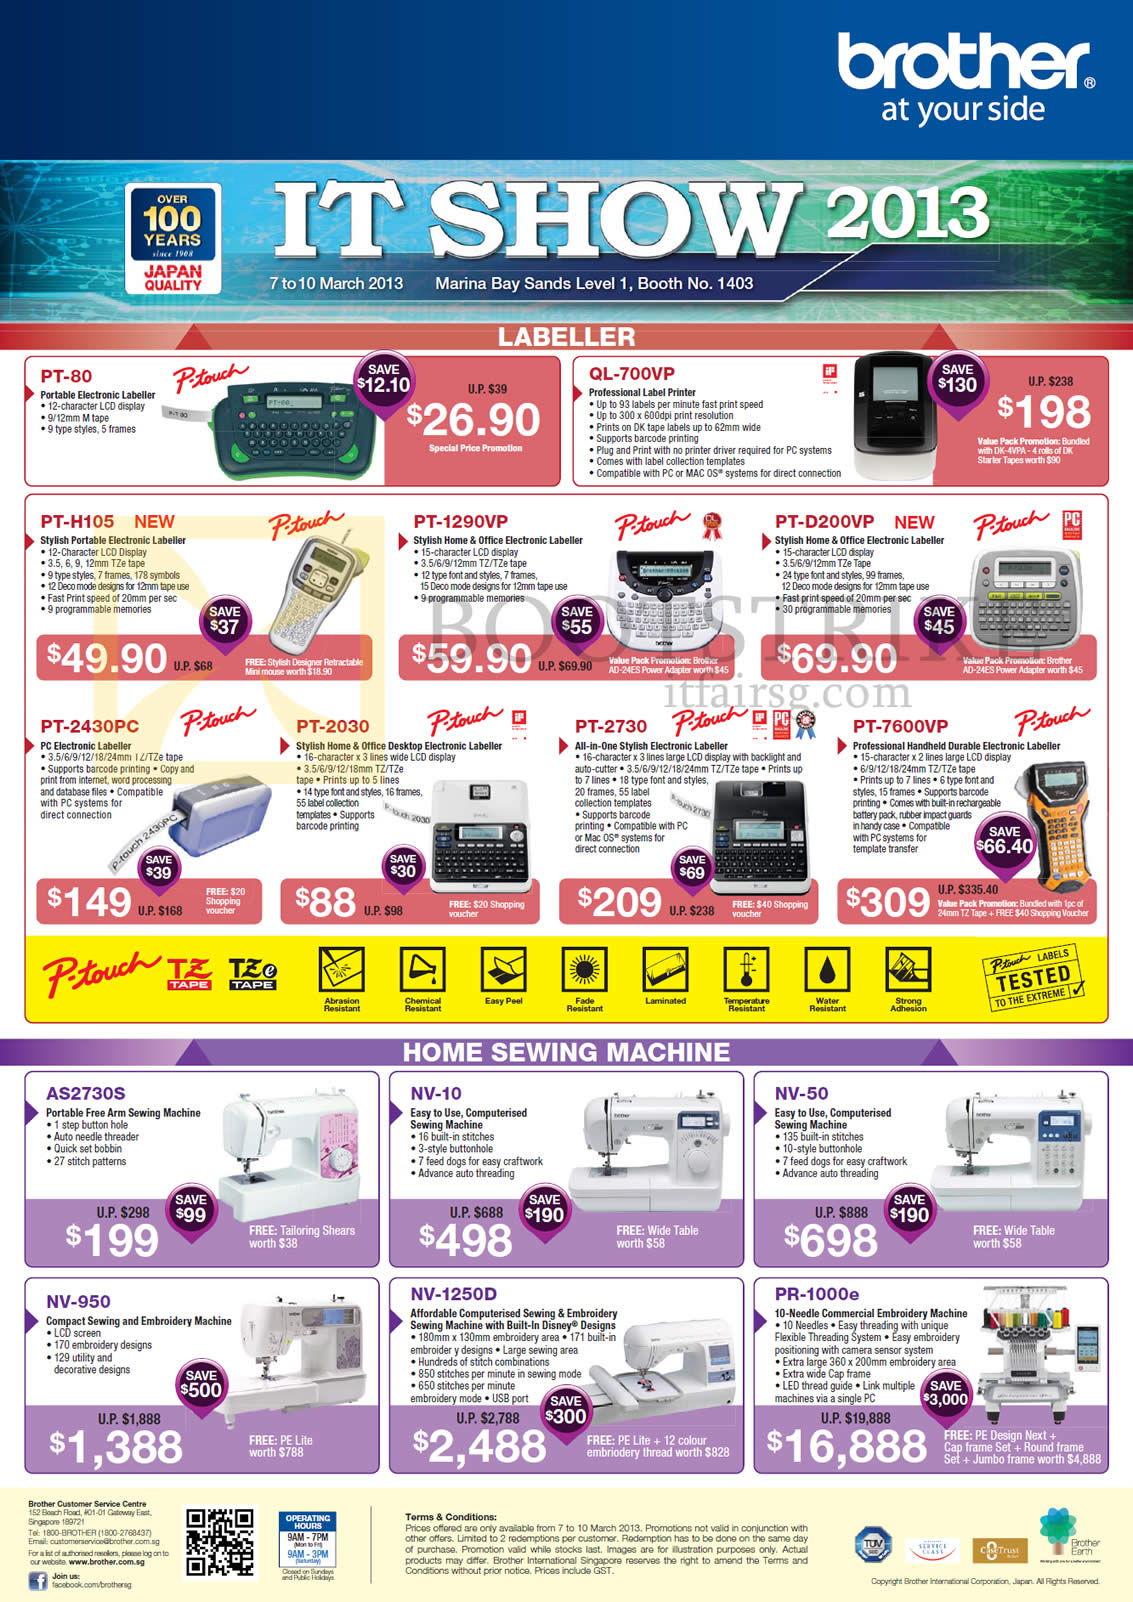 IT SHOW 2013 price list image brochure of Brother Labellers P-Touch PT-80, PT-H105, PT-1290VP, PT-D200VP, PT-2430PC, PT-2030, PT-2730, PT-7600VP, QL-700VP, Sewing Machine, AS2730S, NV-10, NV-50, NV-950, NV-1250D, PR-1000e